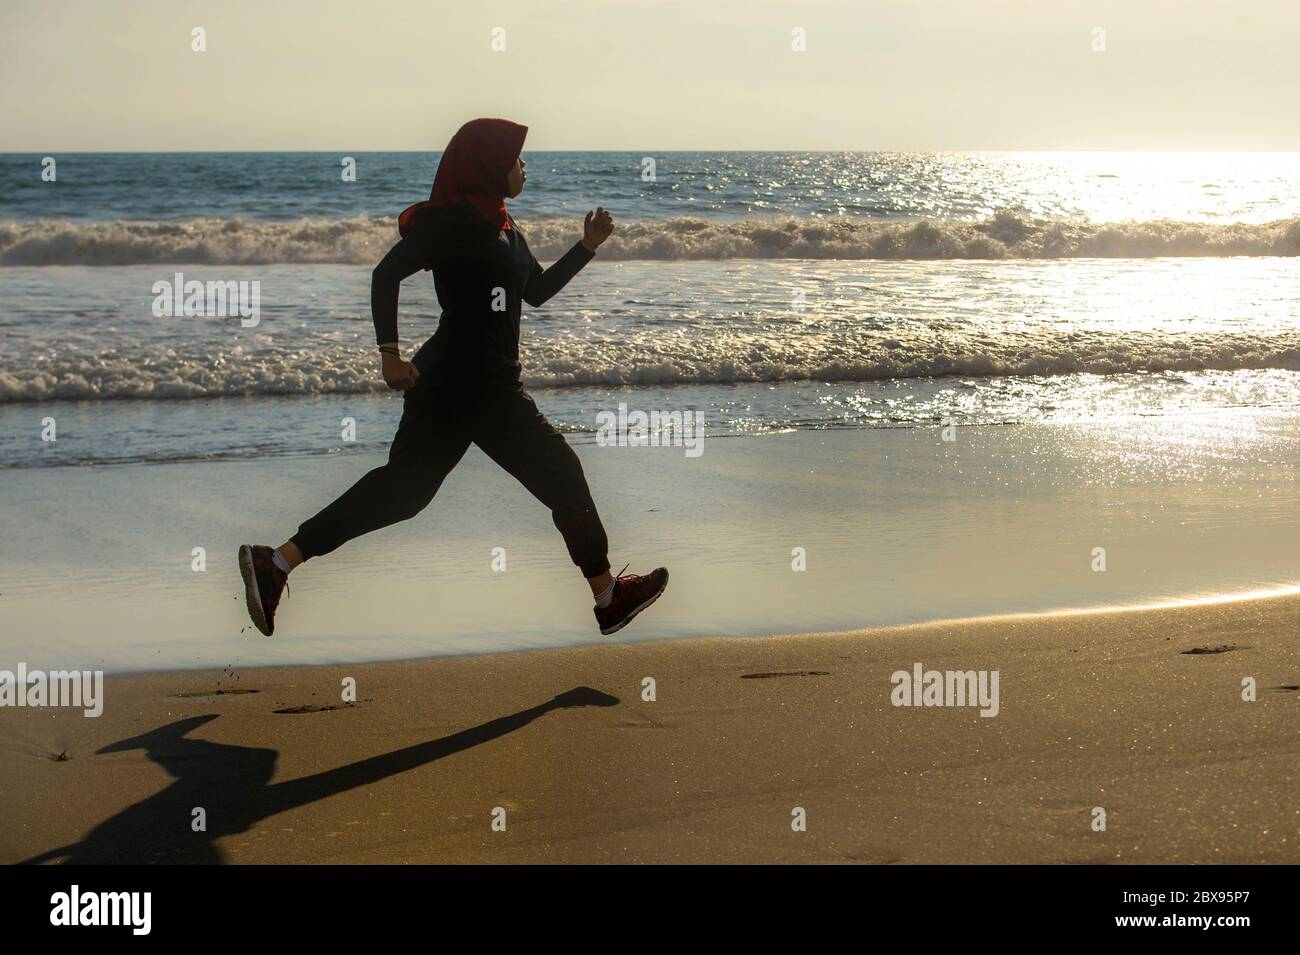 young healthy and active runner Muslim woman in Islam hijab head scarf running and jogging on the beach wearing traditional arab sport clothes in fitn Stock Photo